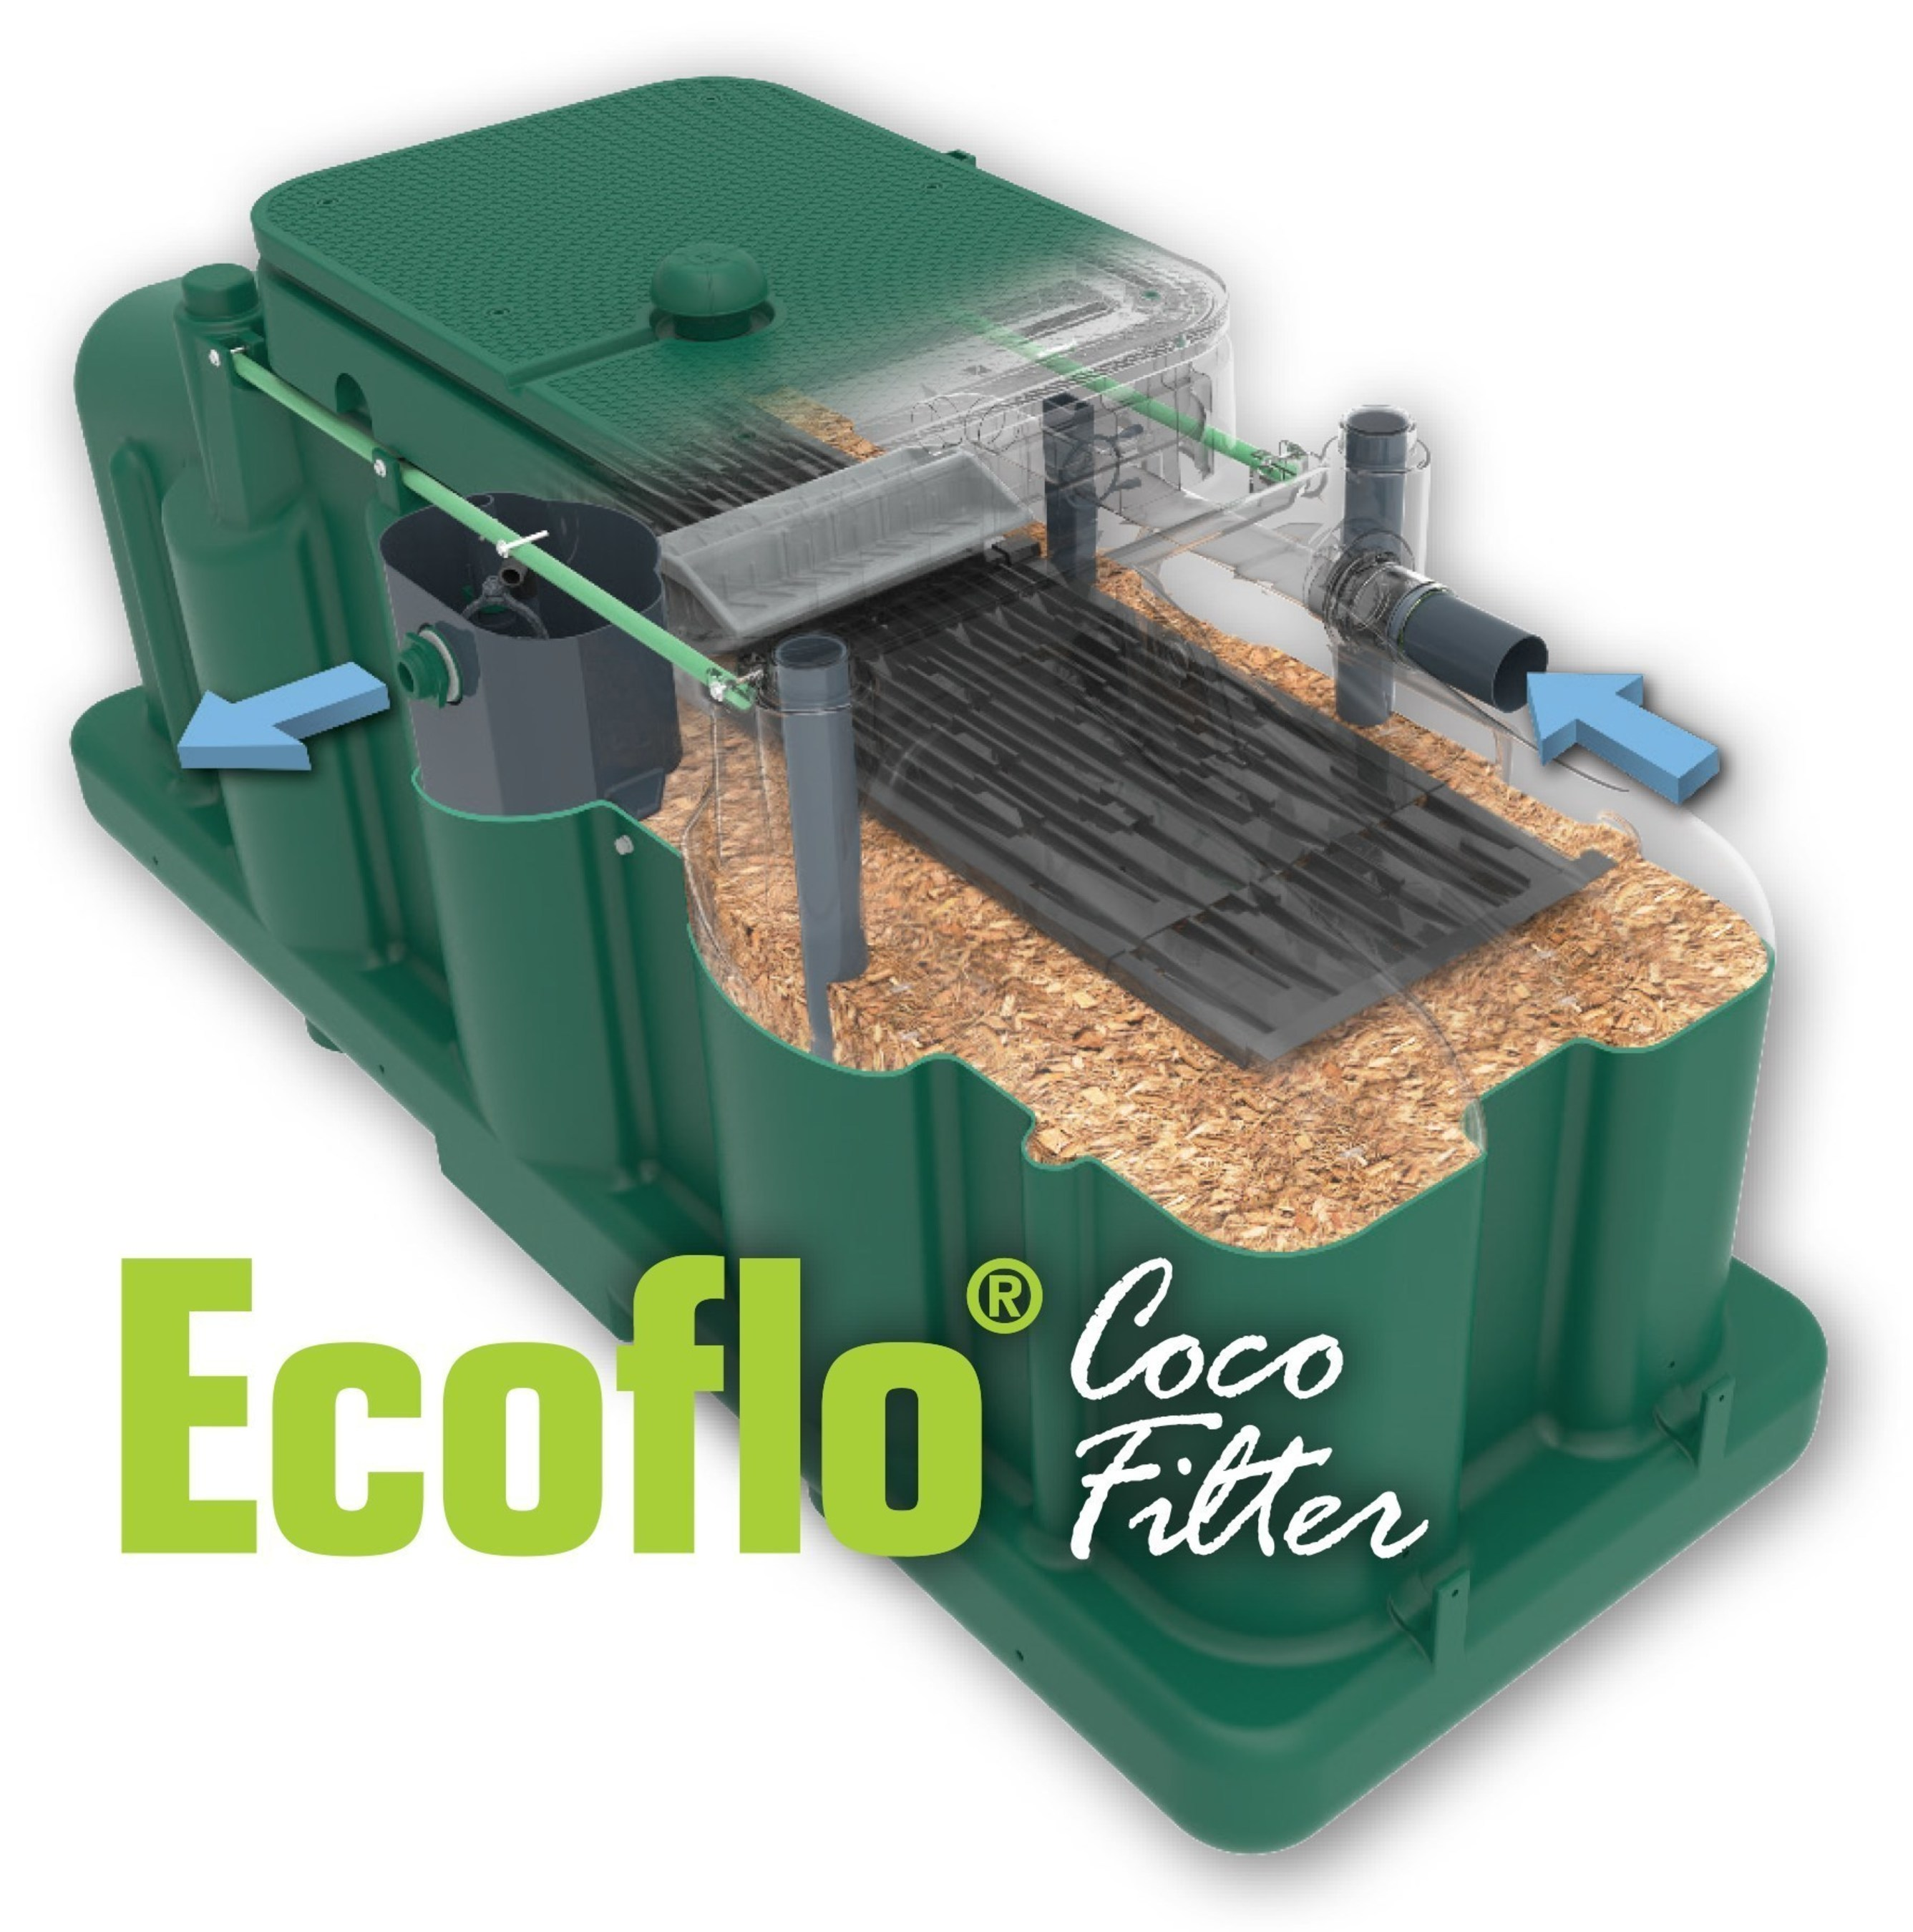 A Second Successful NSF Certification for Ecoflo® Coco Filter